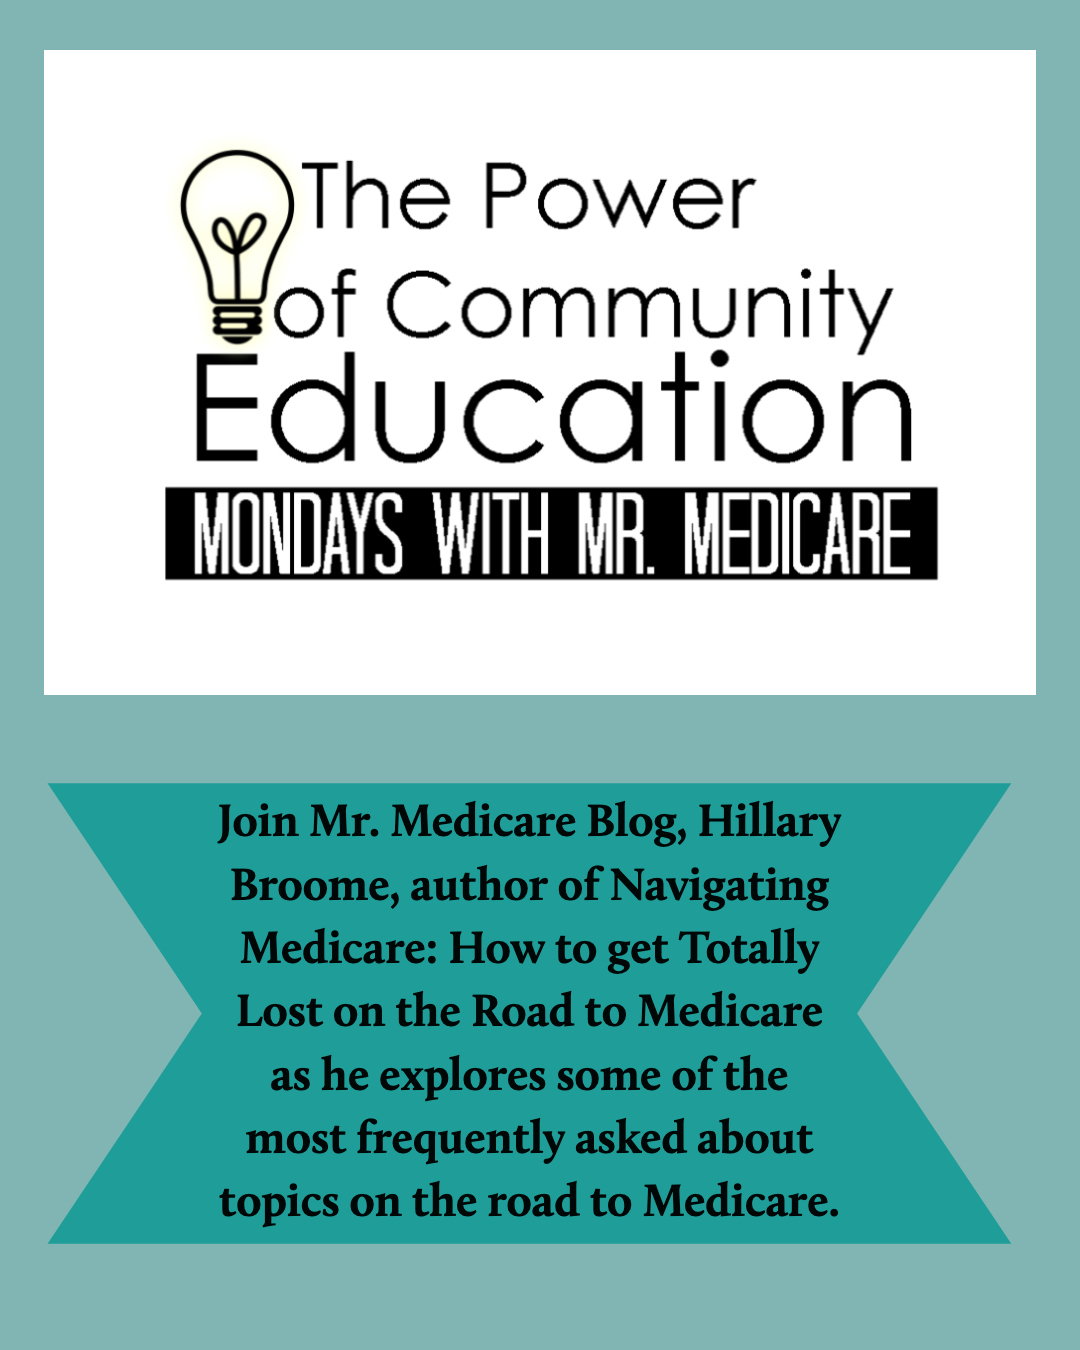 Join Mr. Medicare Blog, Hillary Broome, author of  Navigating Medicare: How to get Totally Lost on the Road to Medicare  as he explores some of the most frequently asked about topics on the road to Medicare.